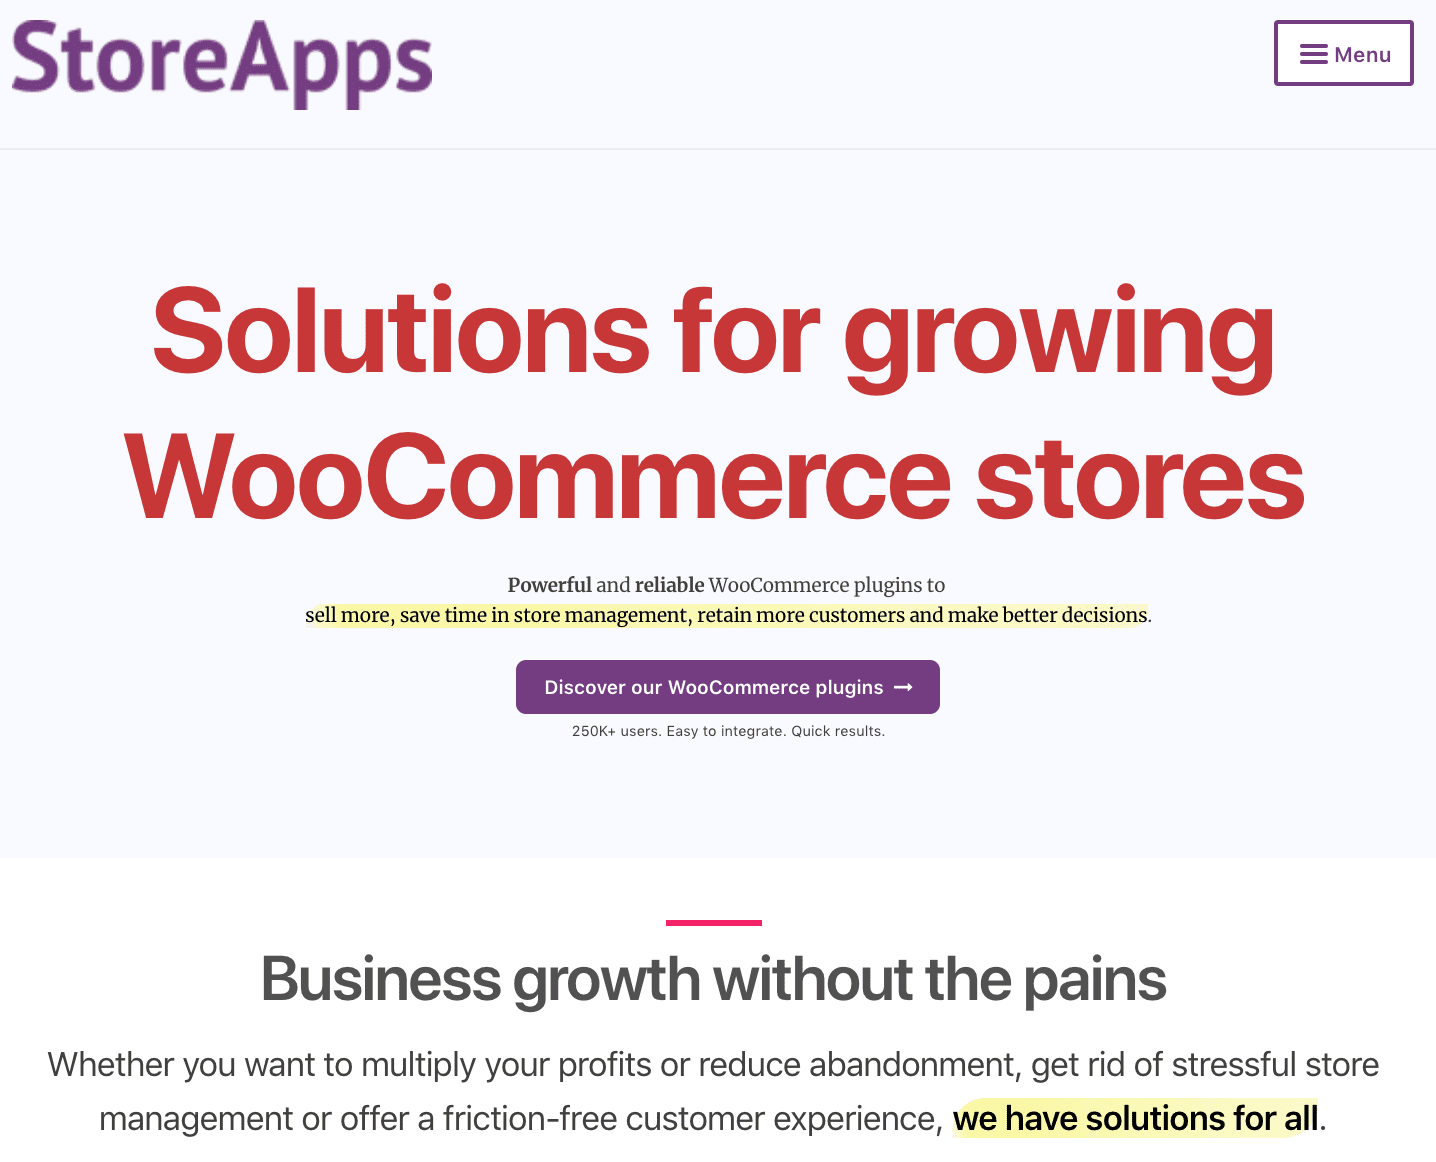 StoreApps site